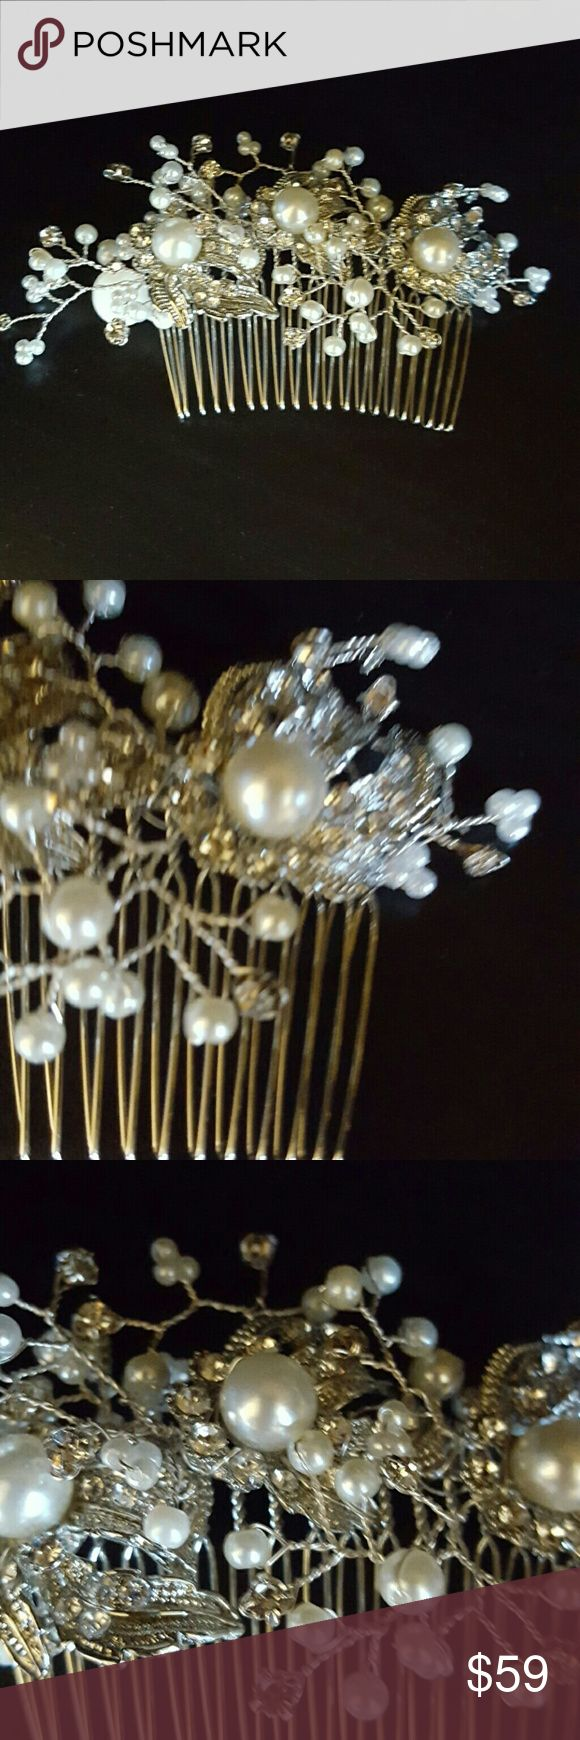 Pearl and rhinestone hair piece Pearl and rhinestone hair piece with 3 focal points. Also 3 millimeter rhinestone Montes mix of 6 millimeter 4 millimeter + 3 millimeter pearls. On a 3-inch comb Uniquely Yours by Gina Nachreiner Accessories Hair Accessories